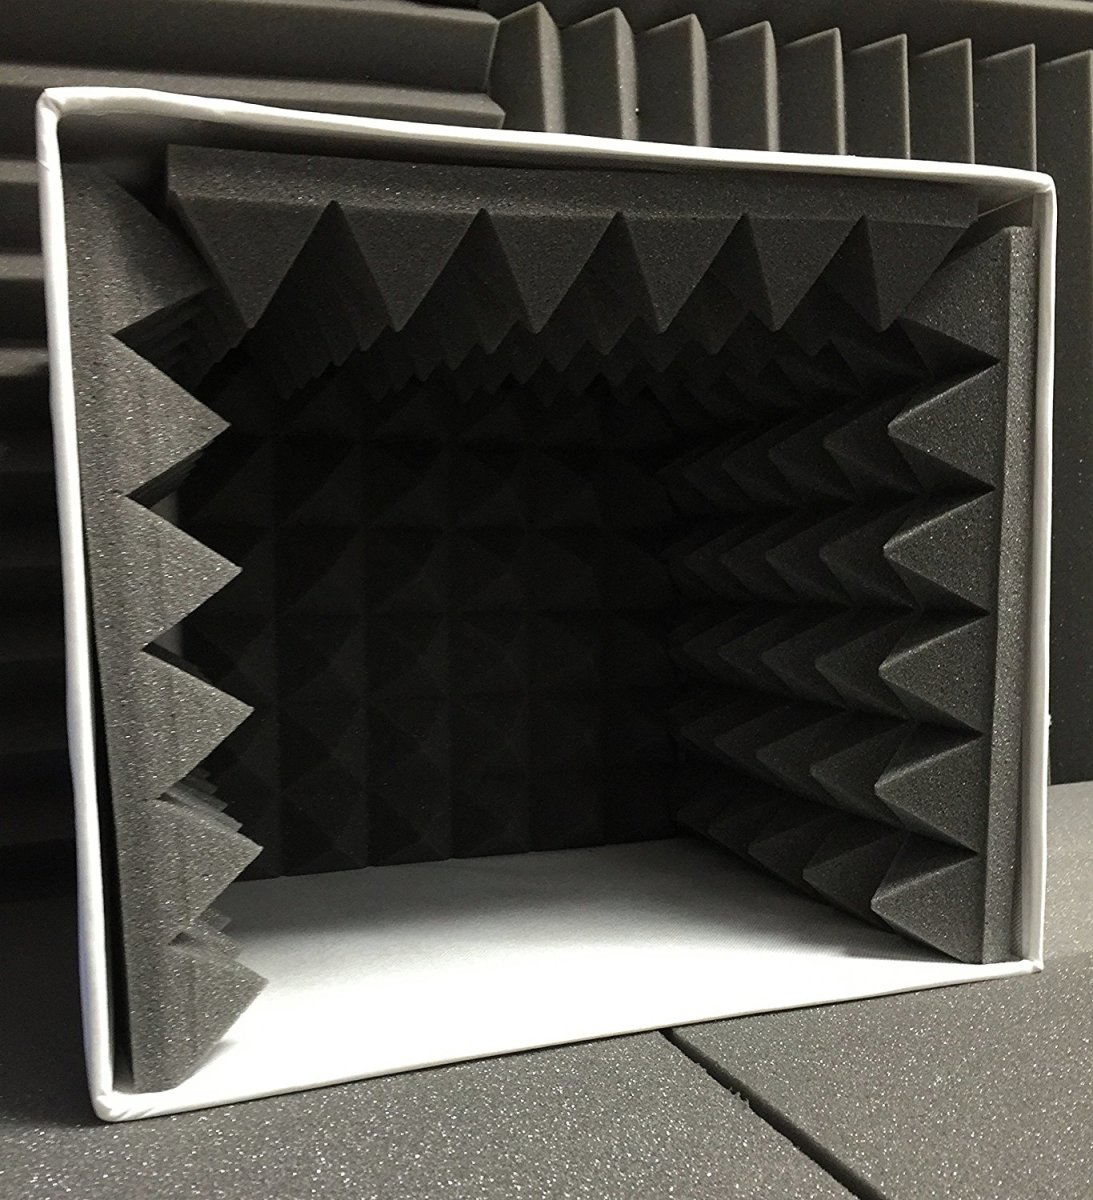 Effective, portable methods of localised acoustic treatment and isolation are widely available to buy and easy to make.